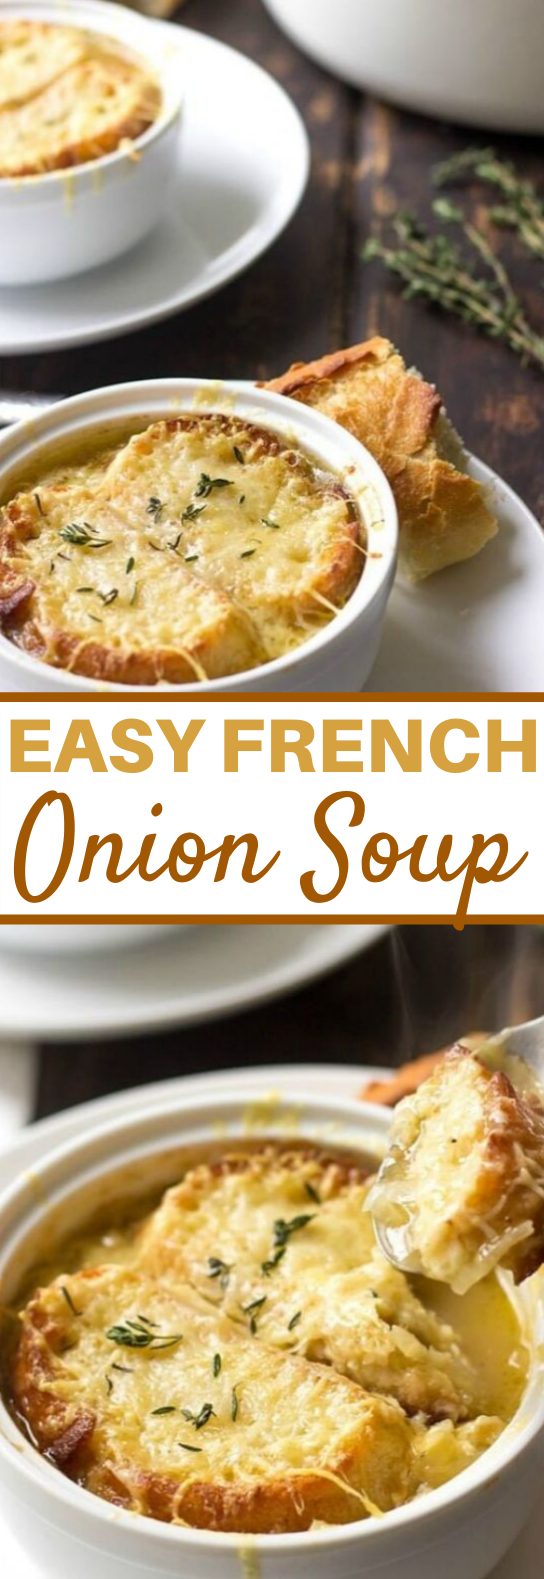 Easy French Onion Soup #dinner #soup #comfortfood #winter #easyrecipes